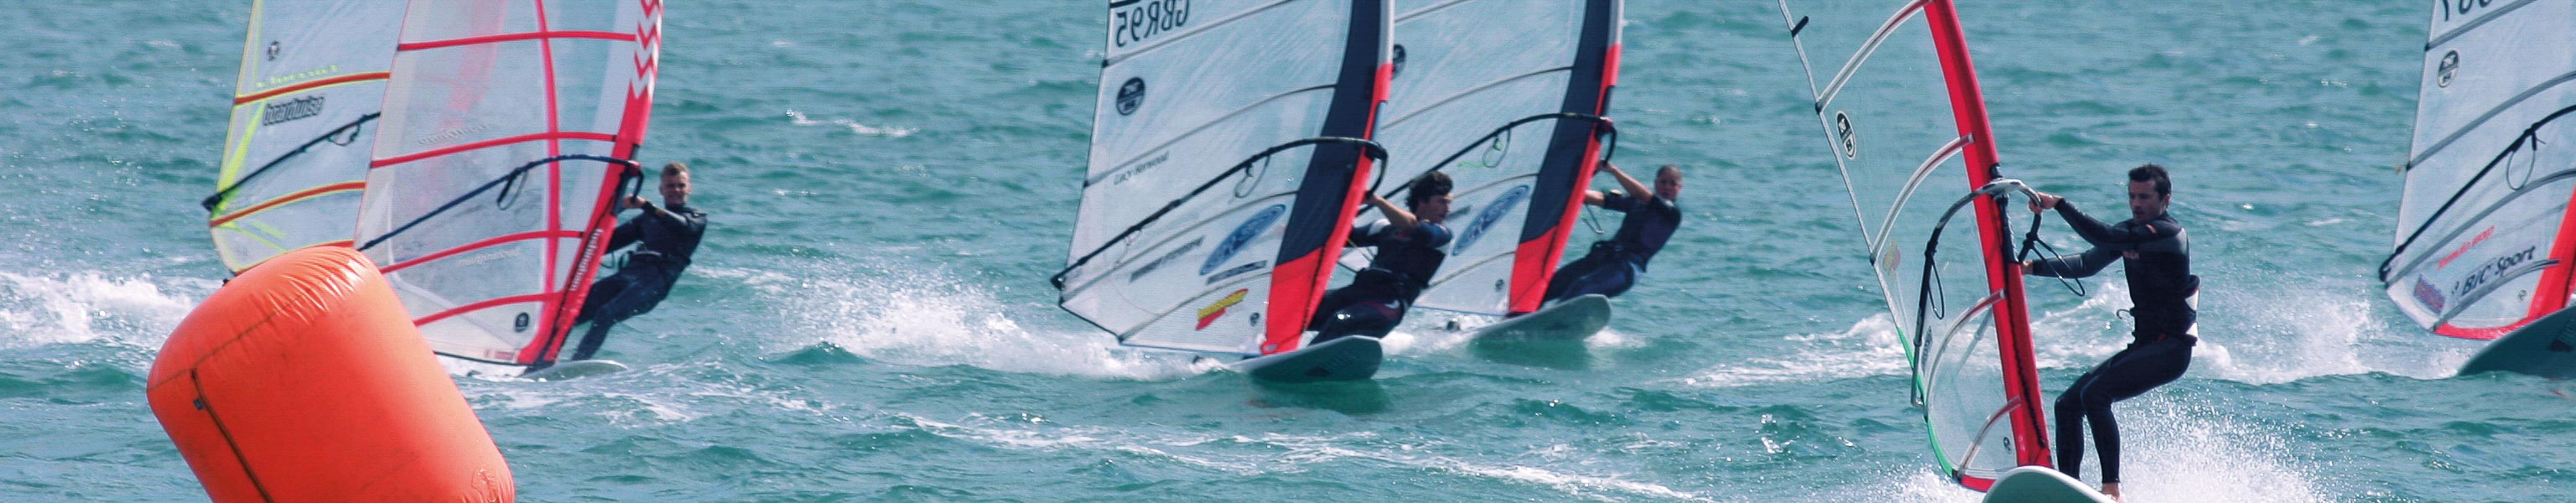 Hayling Island is excellent for watersports